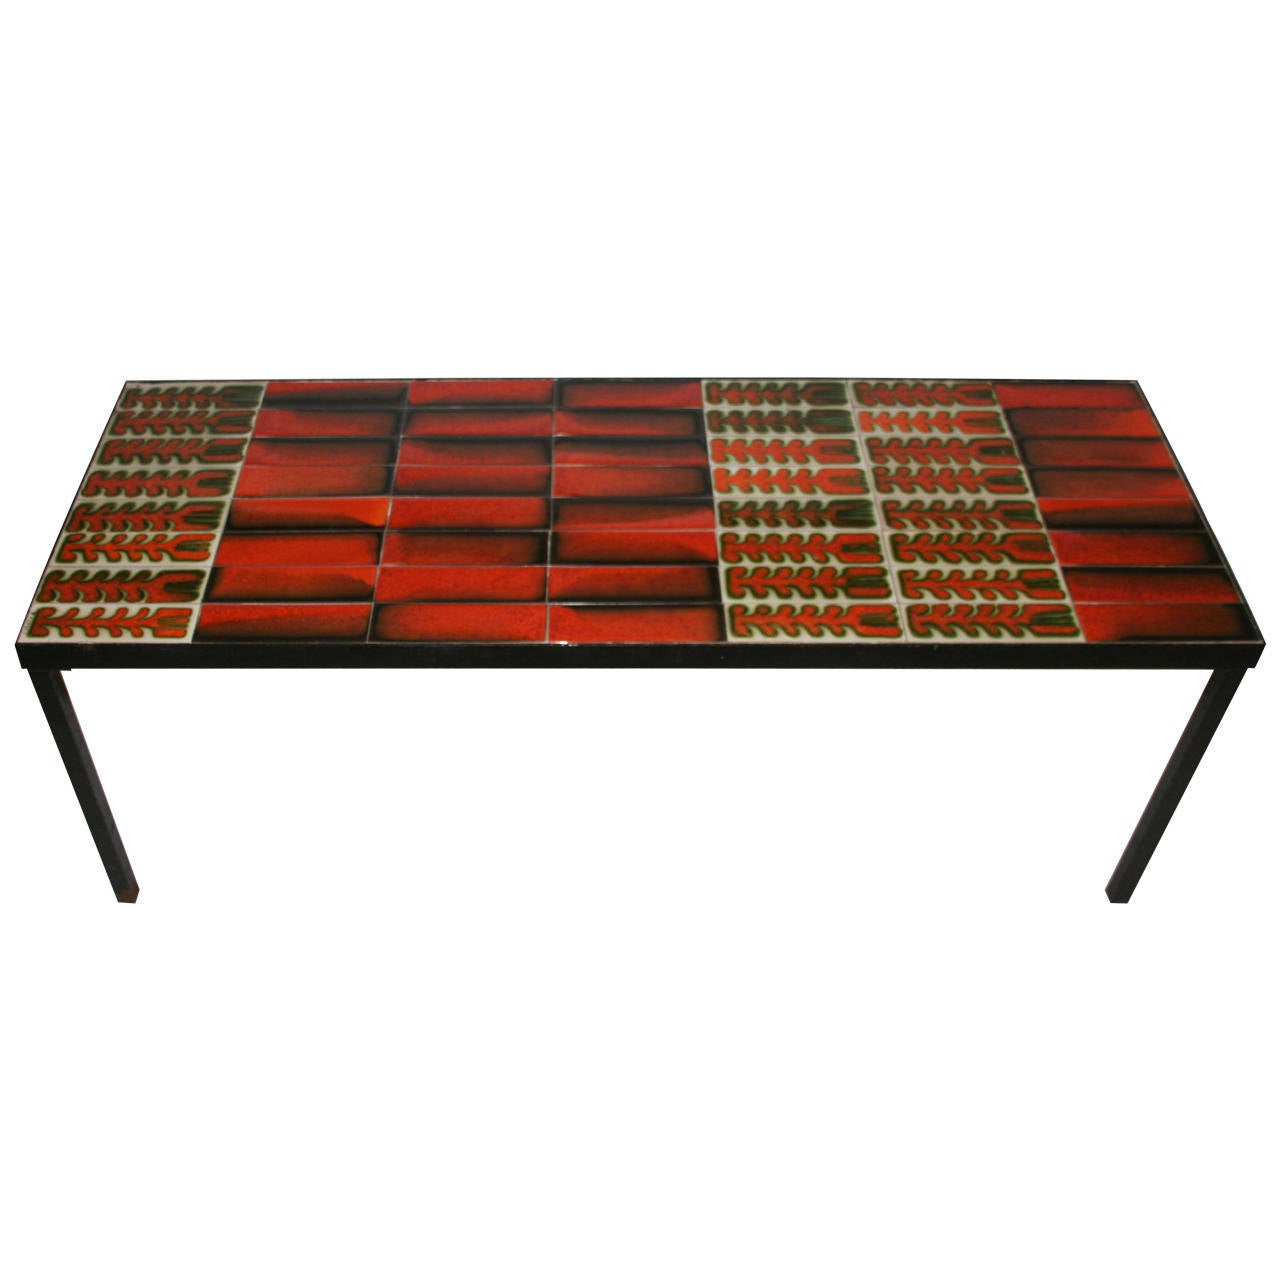 Roger Capron Signed Ceramic Coffee Table, circa 1970 France